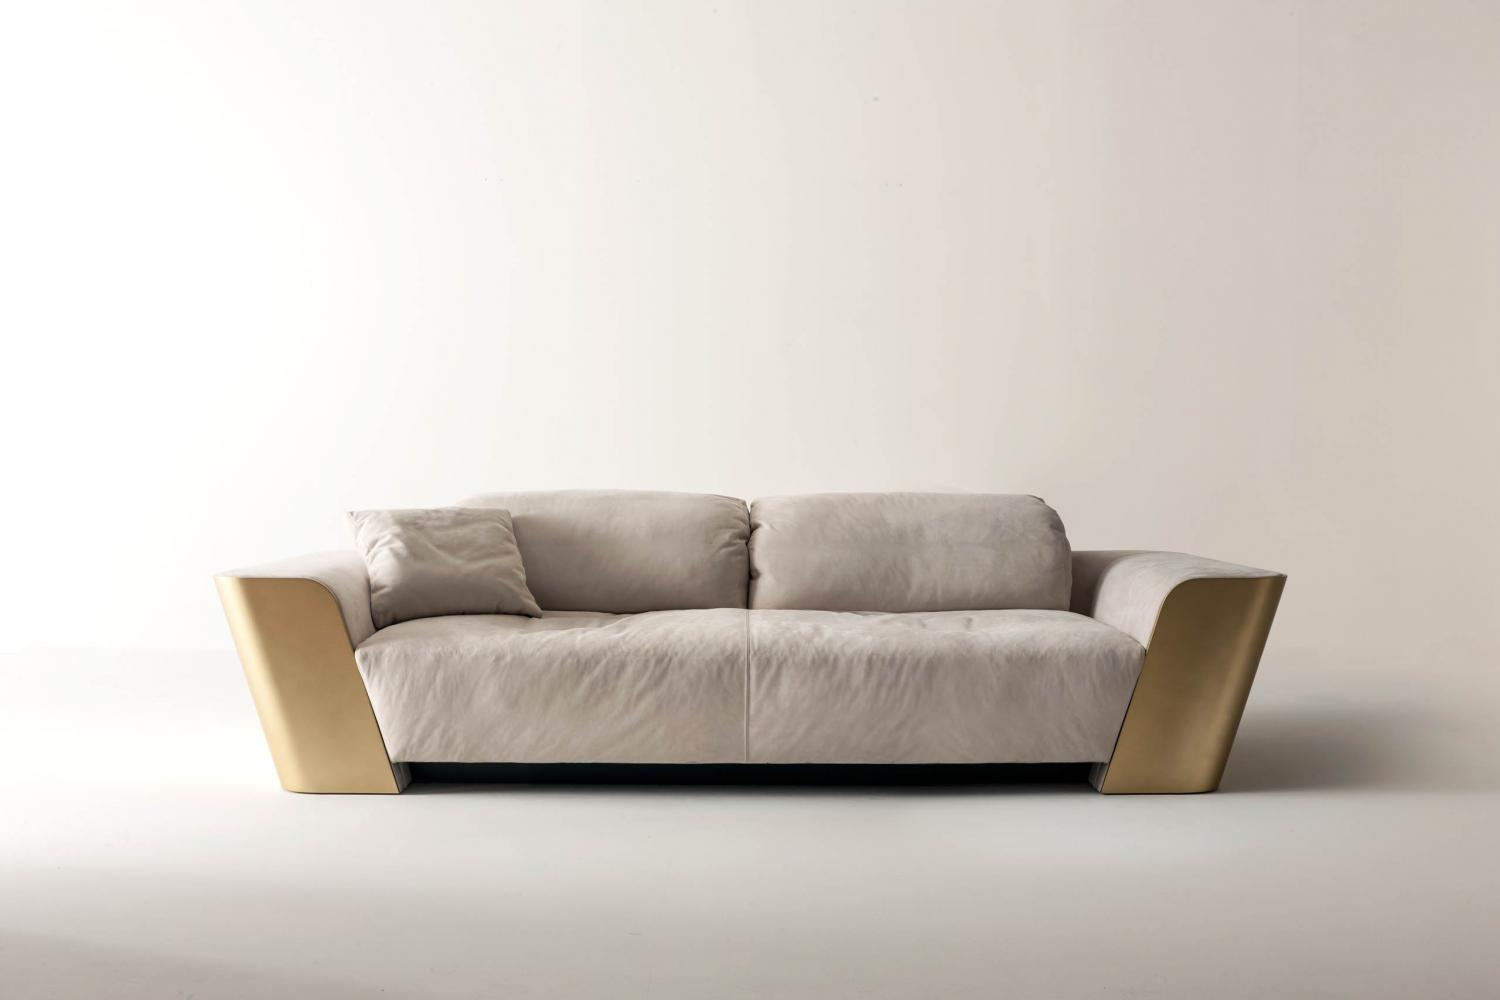 luxury modern design 2 seater sofa in white nubuk leather and gold lacquered structure